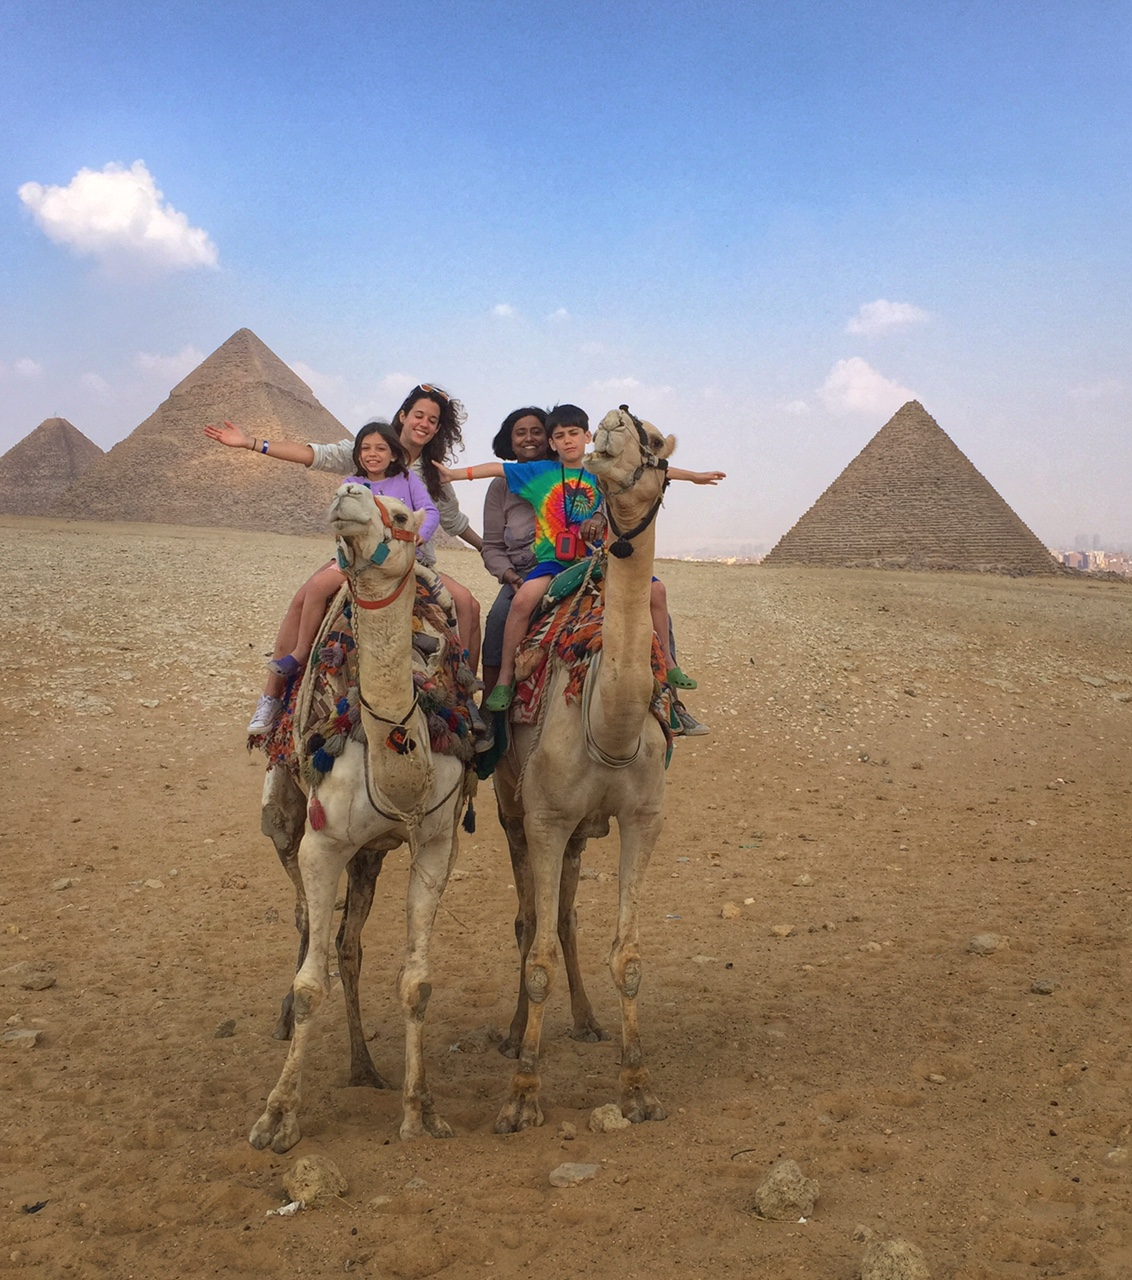 family photo in front of pyramids